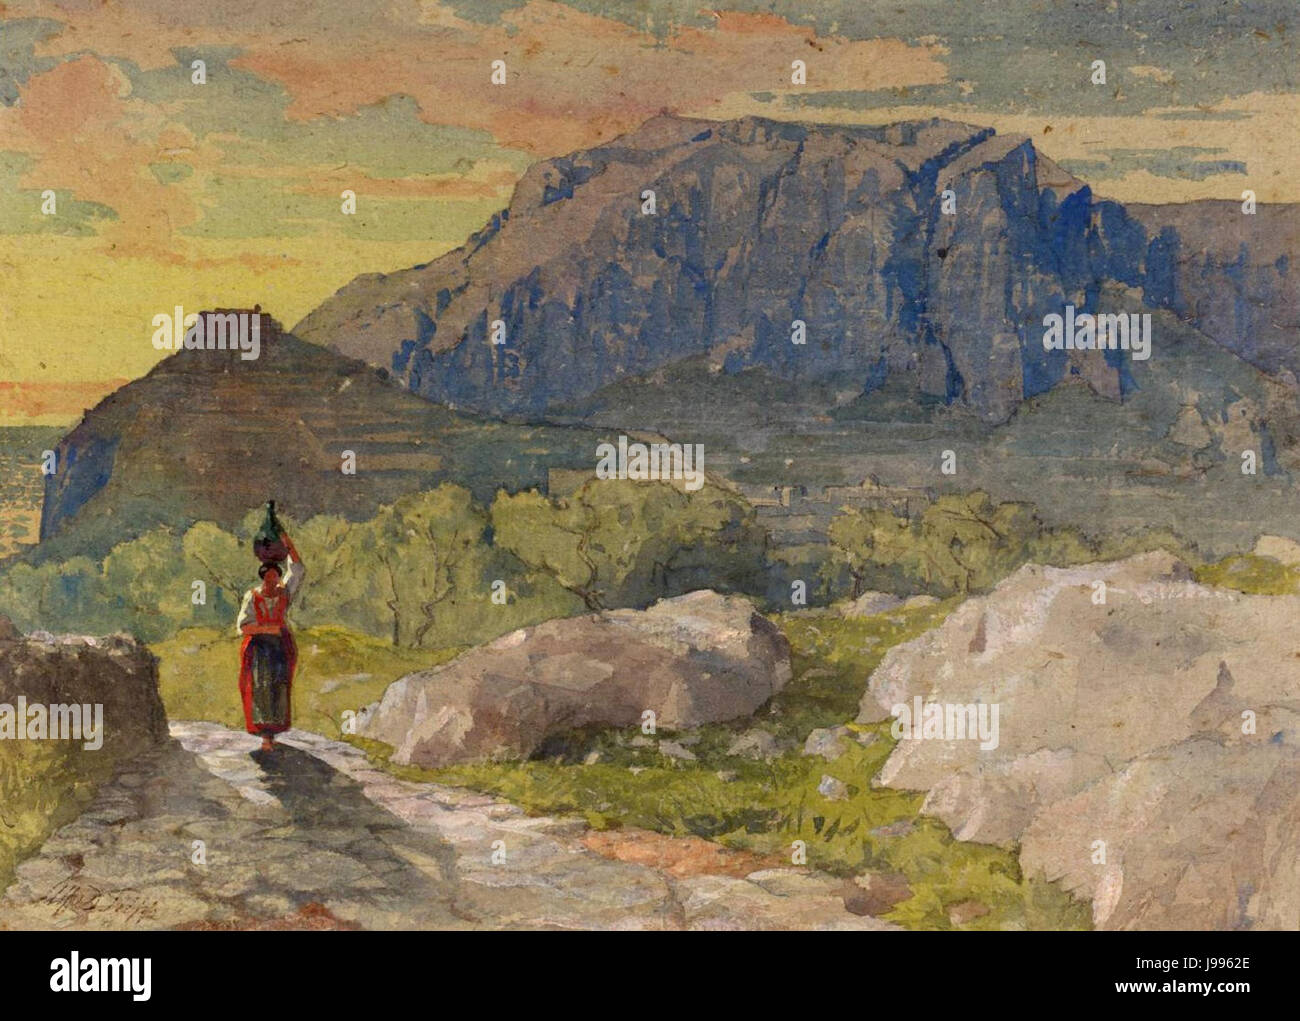 Peasant Woman in a Mountainous Landscape by Alfred Downing Fripp - Stock Image